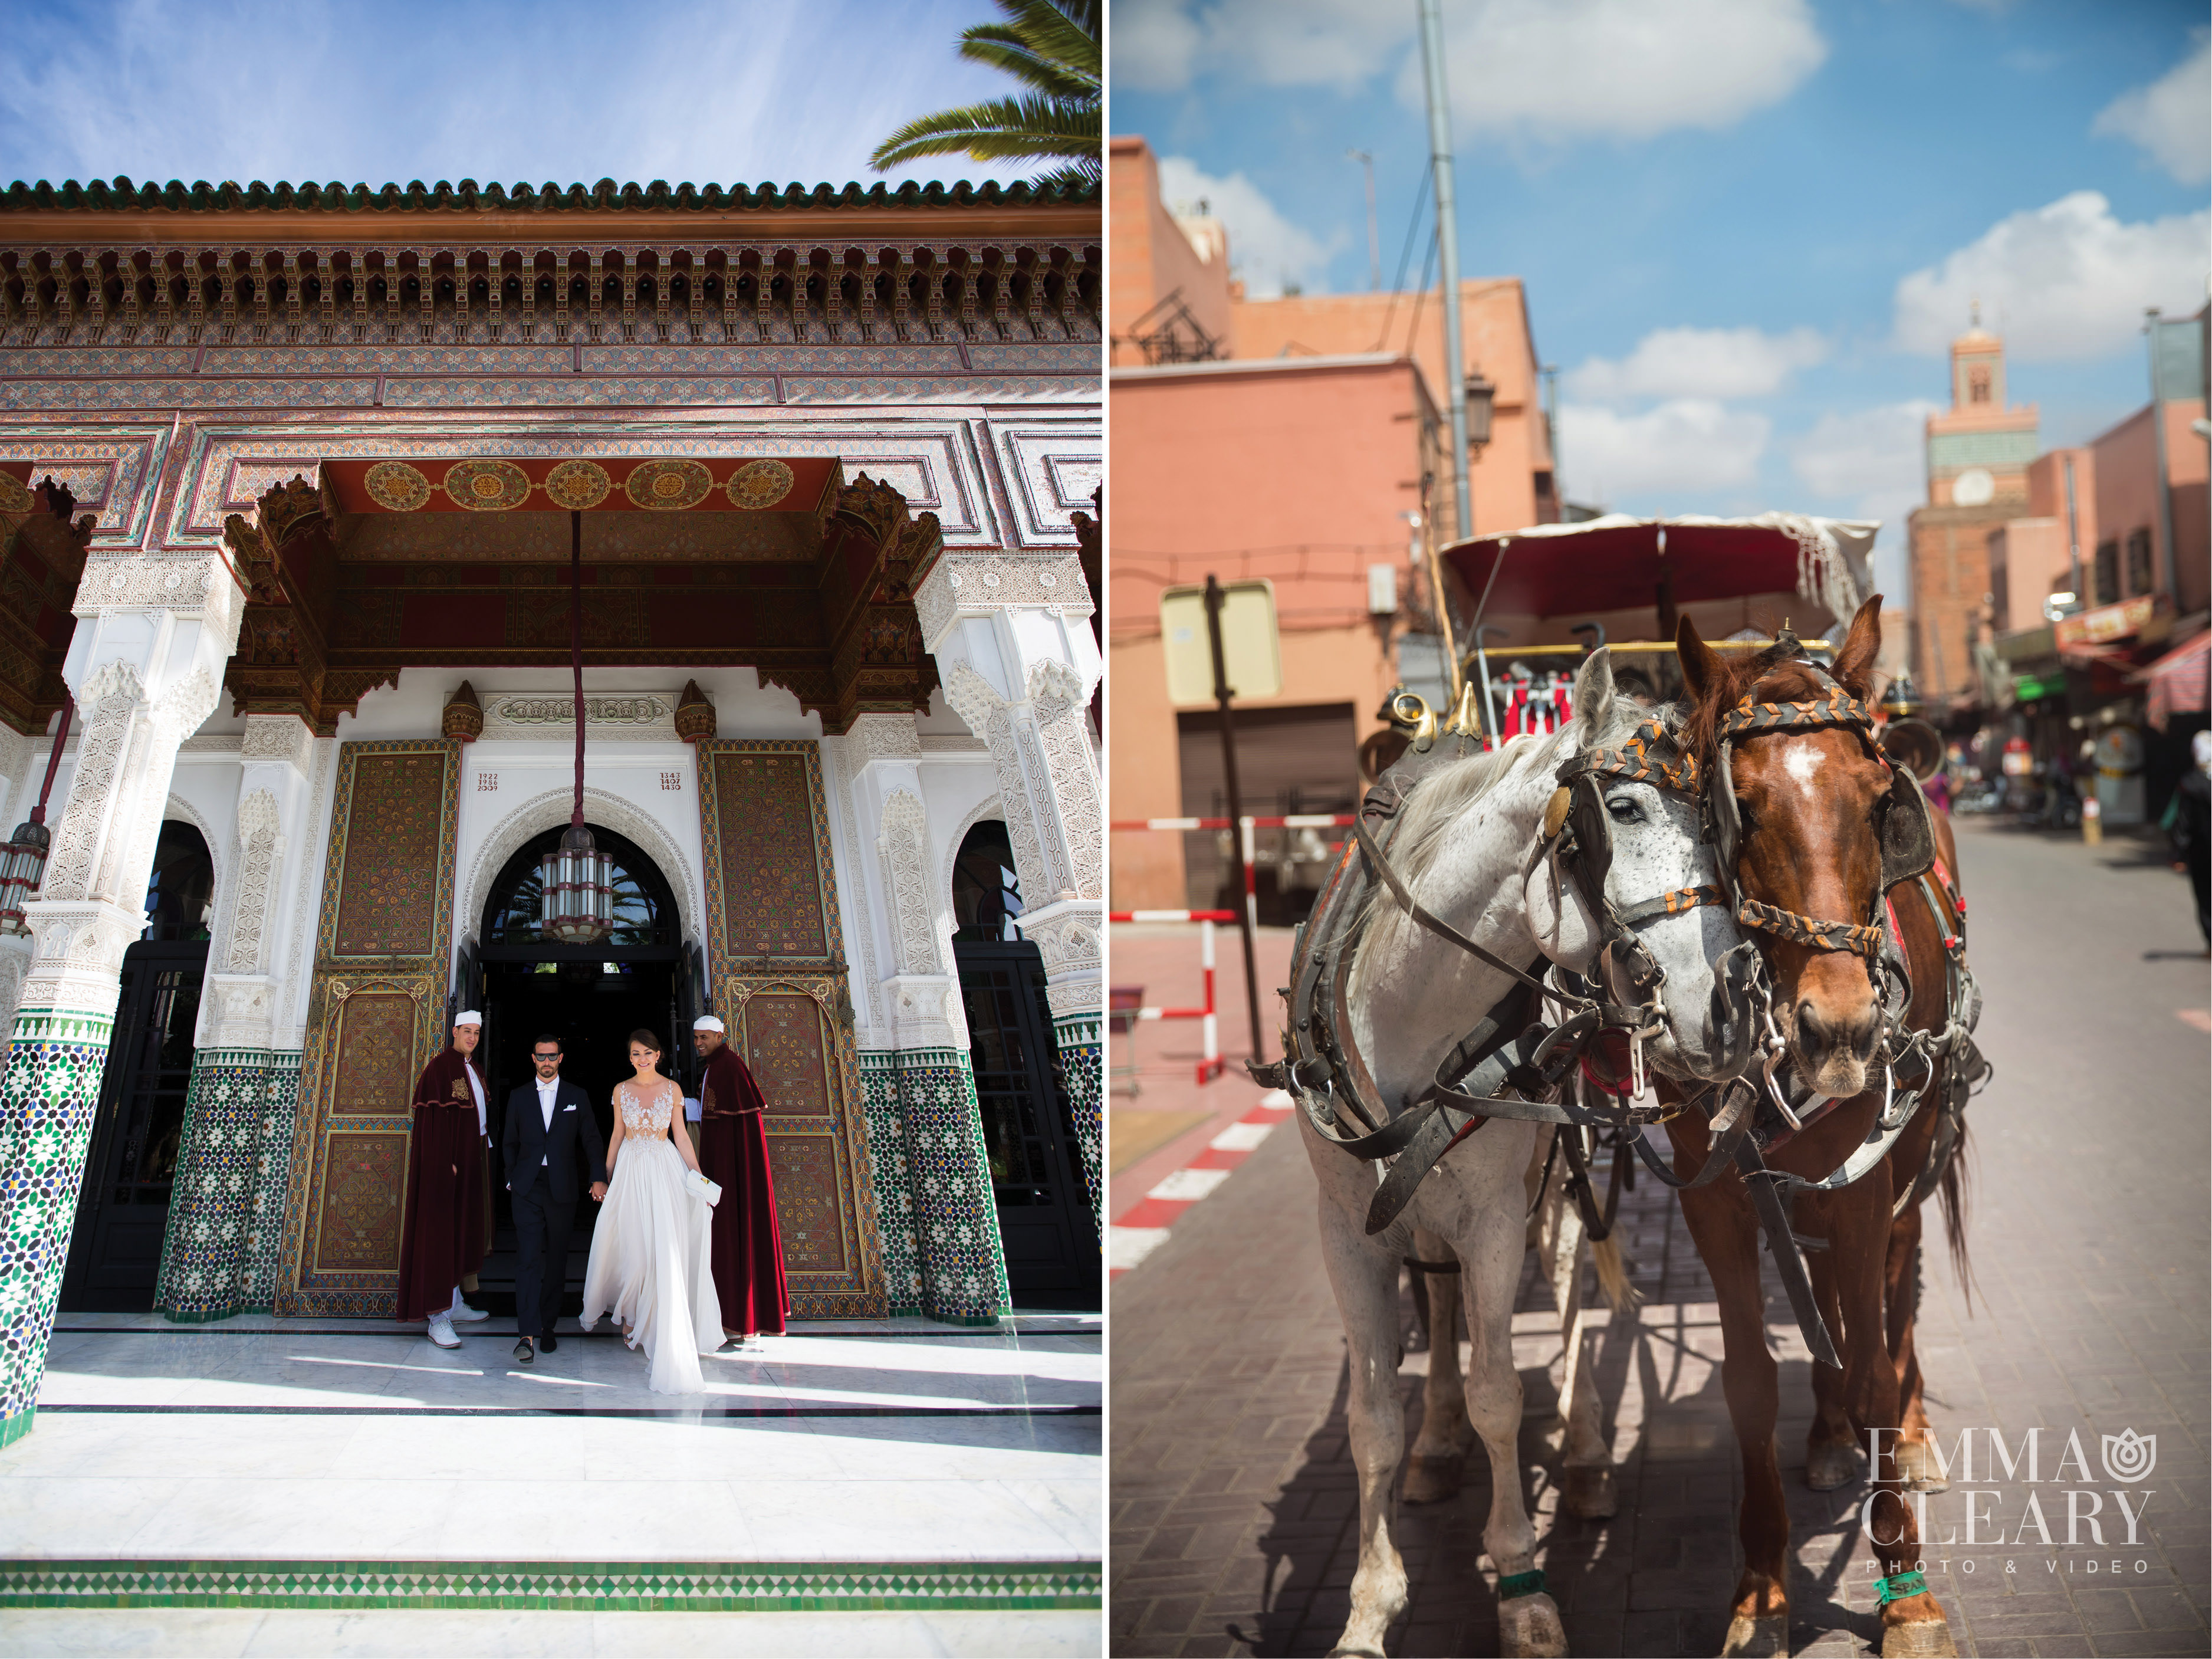 Emma_cleary_photography Destination Wedding Morrocco12